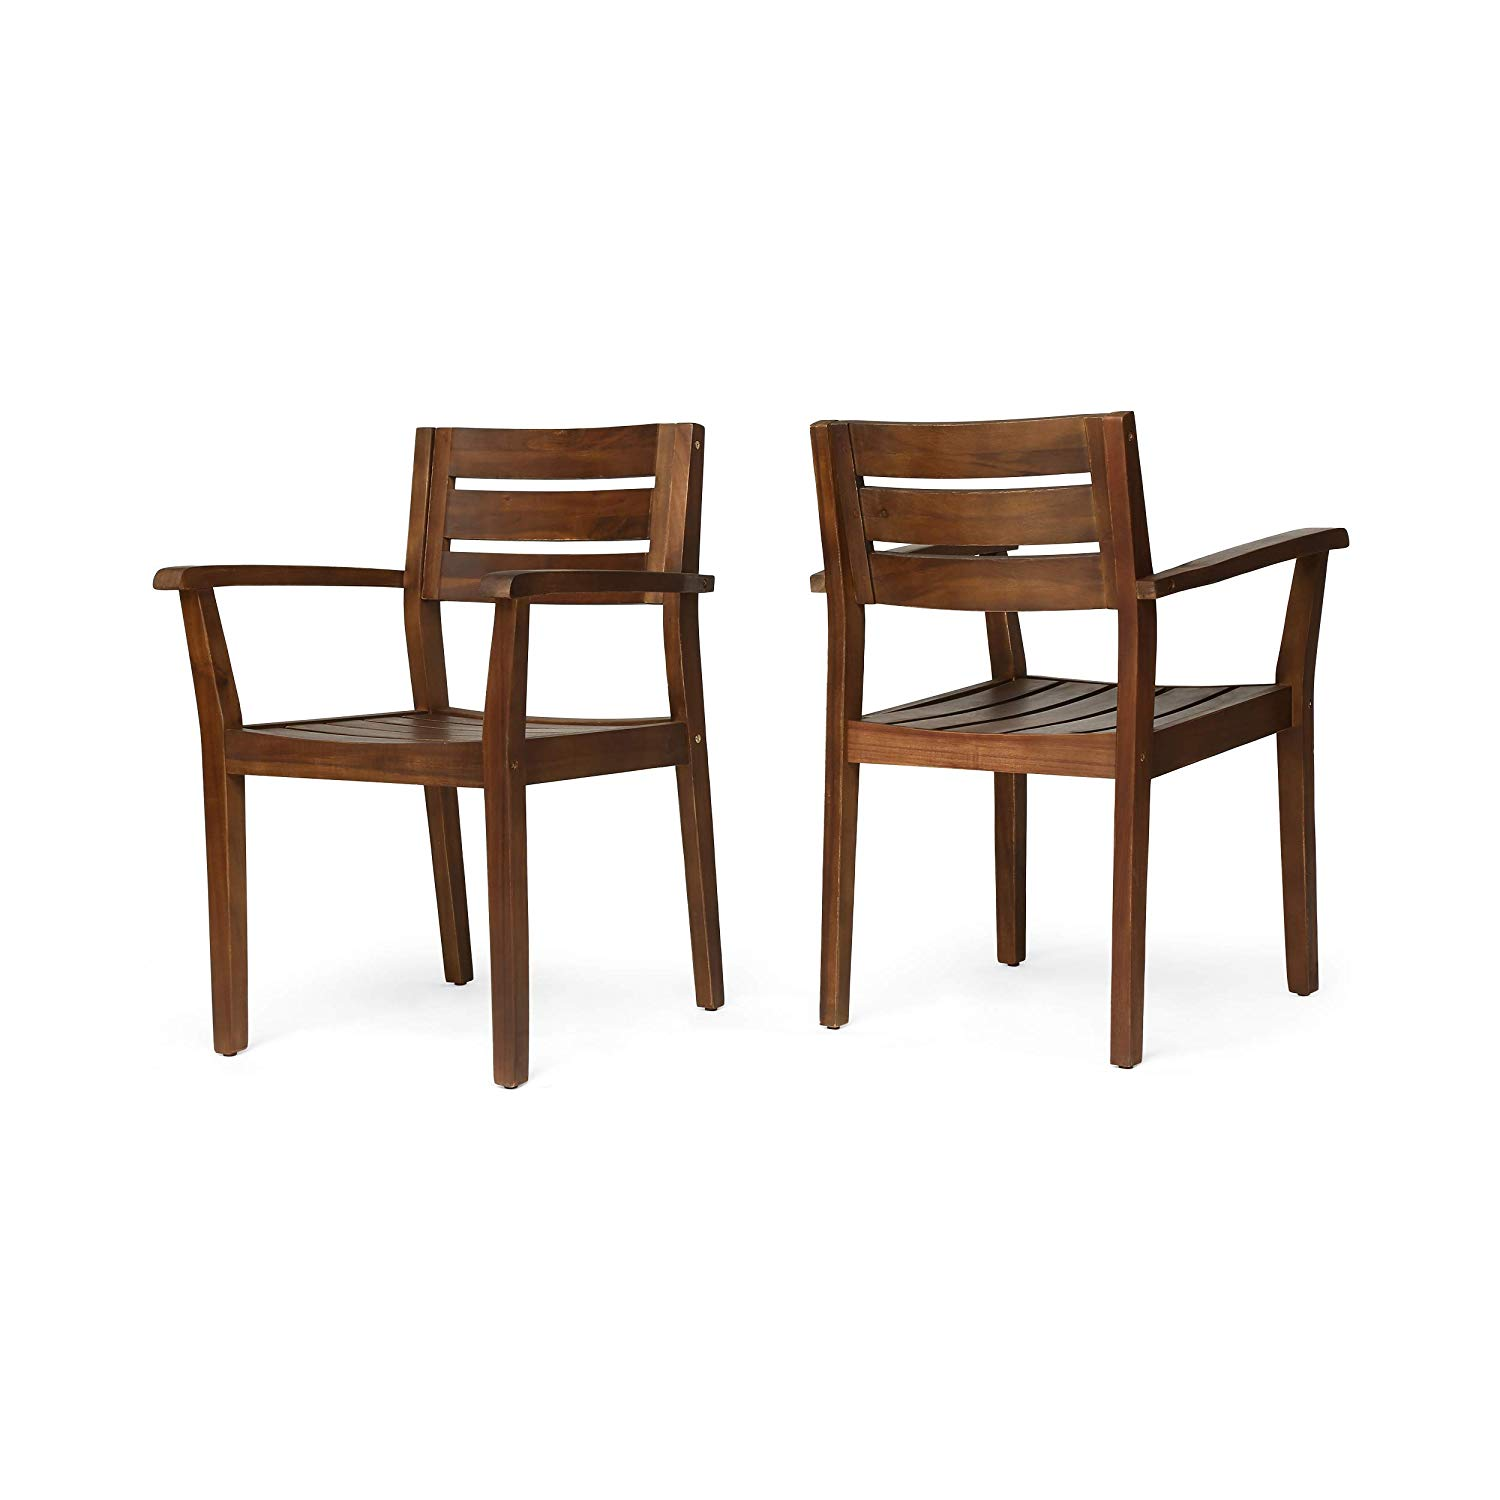 Get Quotations · Great Deal Furniture Stanford Outdoor Dining Chairs |  Acacia Wood | Dark Brown Finish | Set